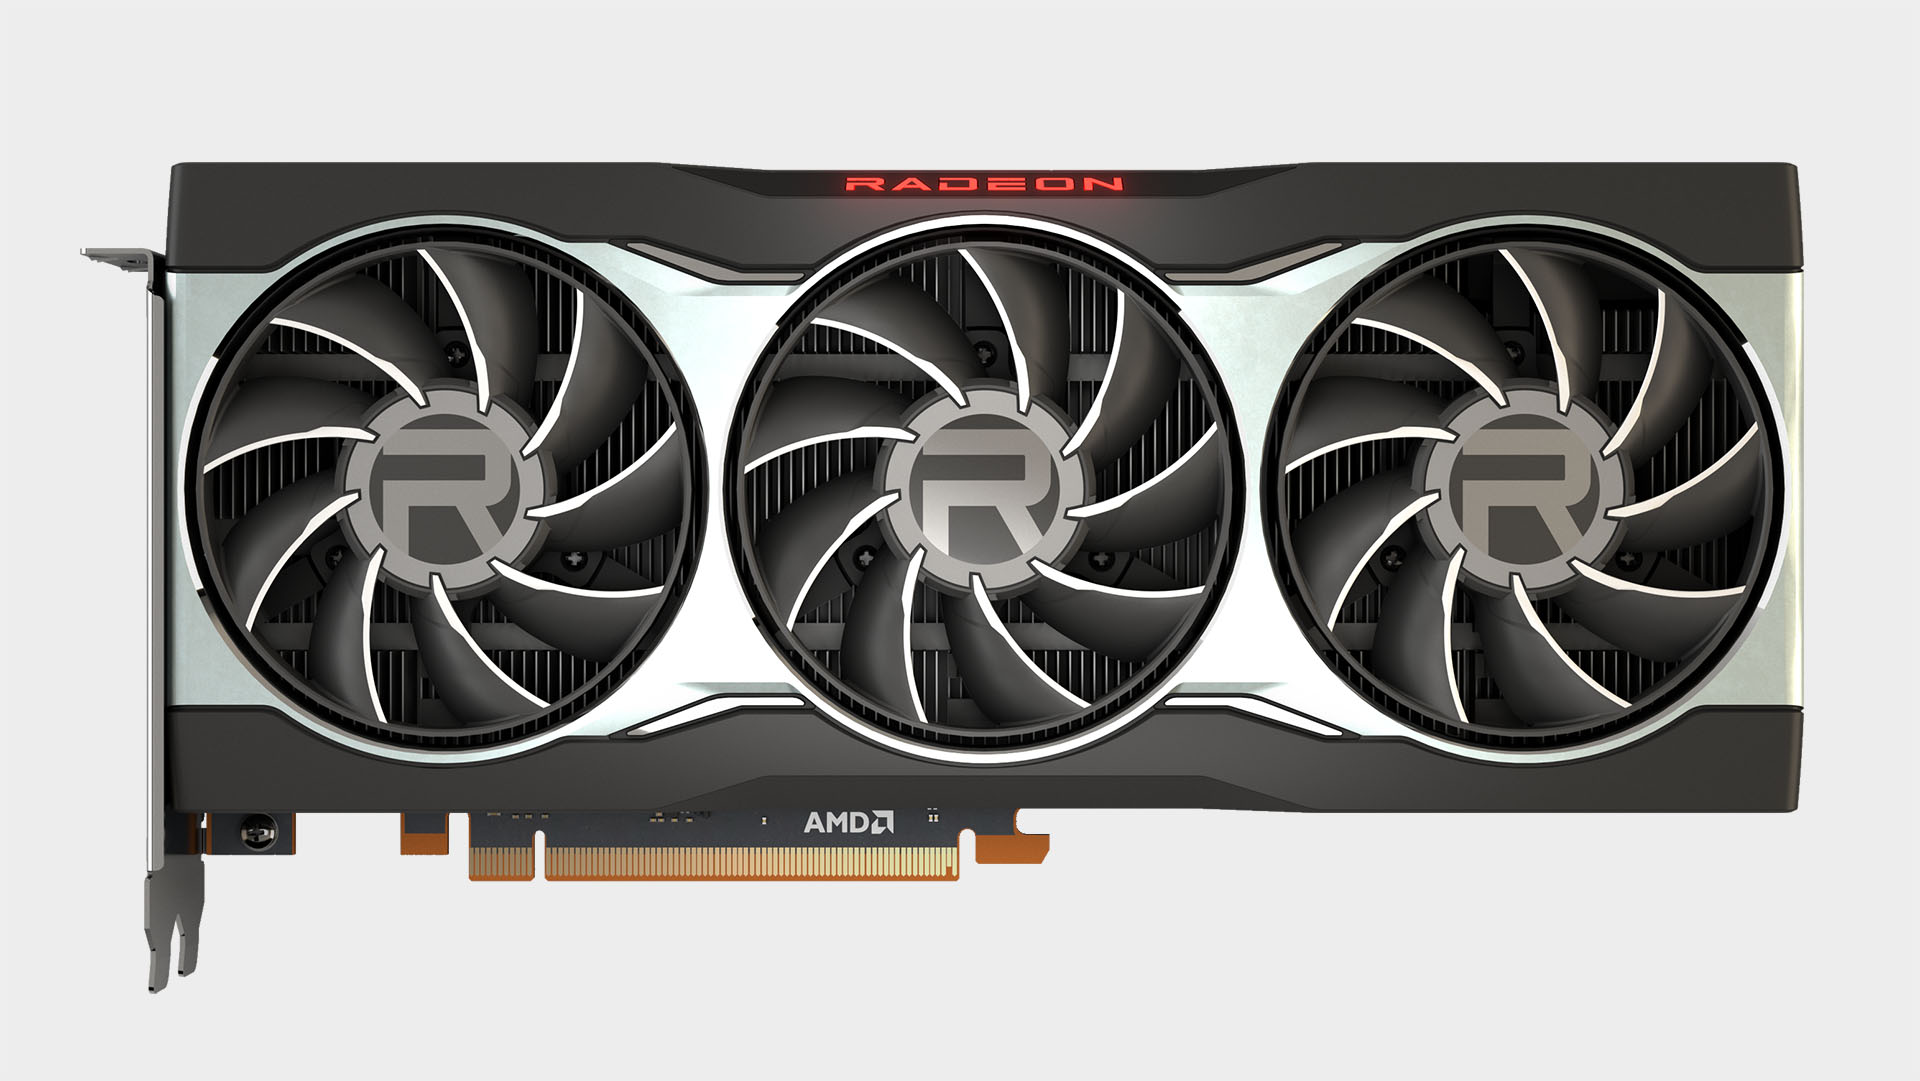 AMD Radeon RX 6800 graphics card shot from above on a blank background